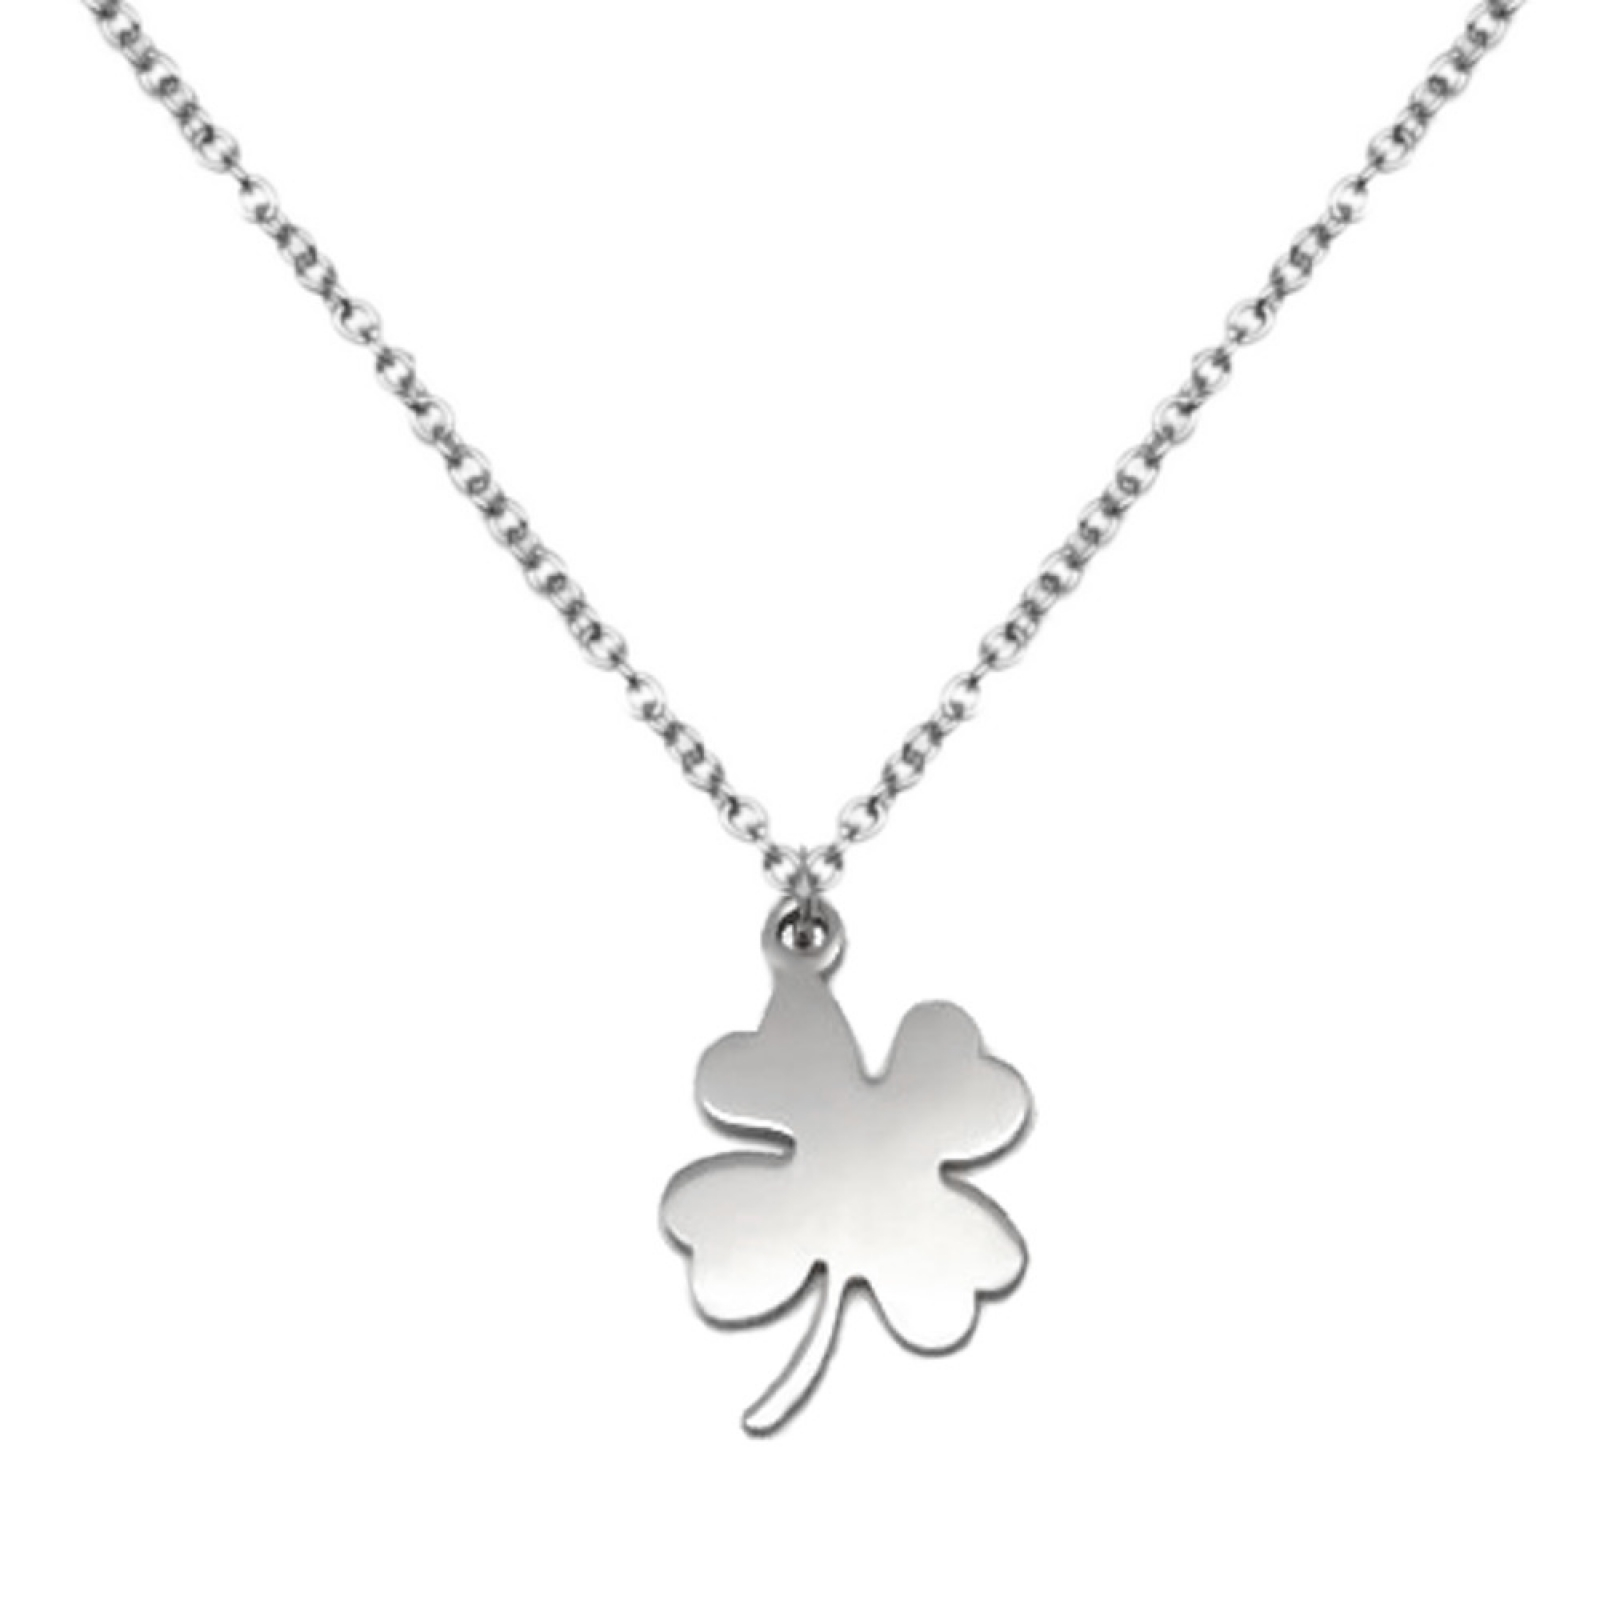 leaf four pendant silver cz clover good luck sterling necklace pave